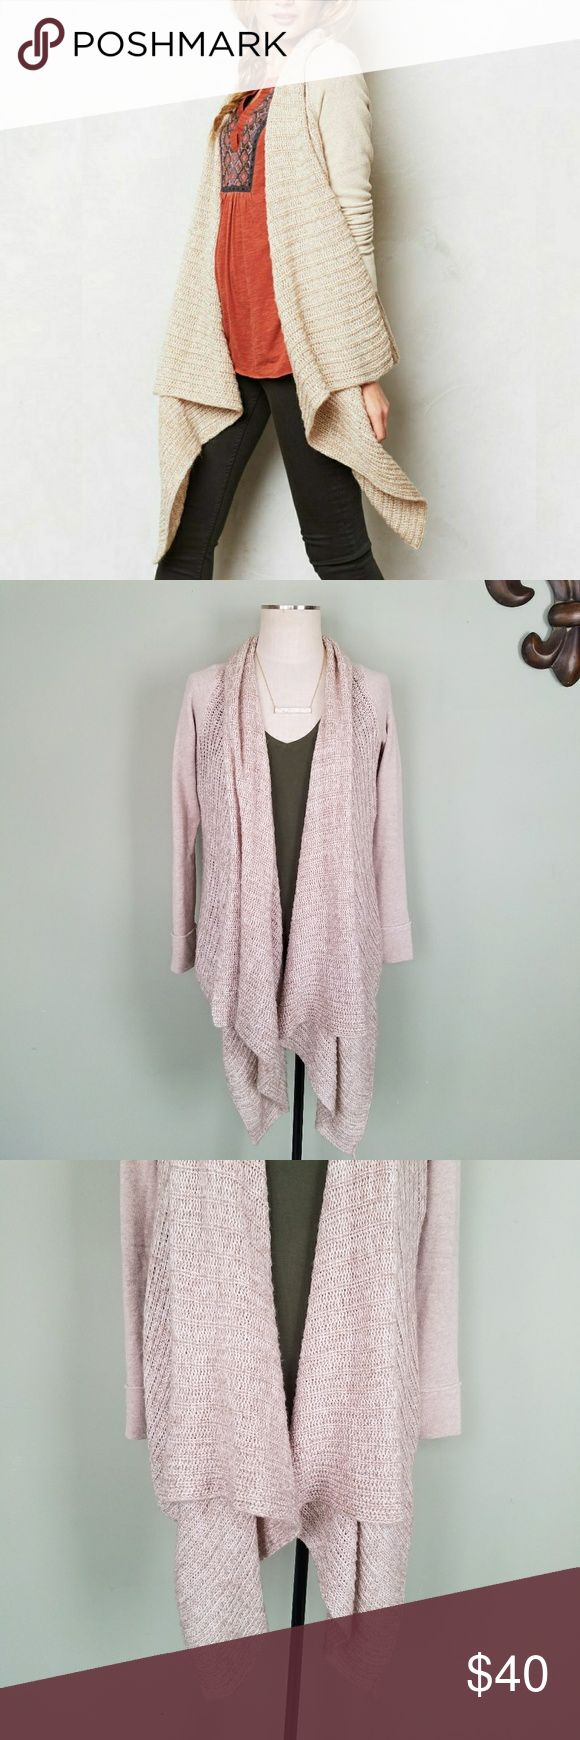 Lace Back, Cardigans Femme, Pink (Nude), 38New Look